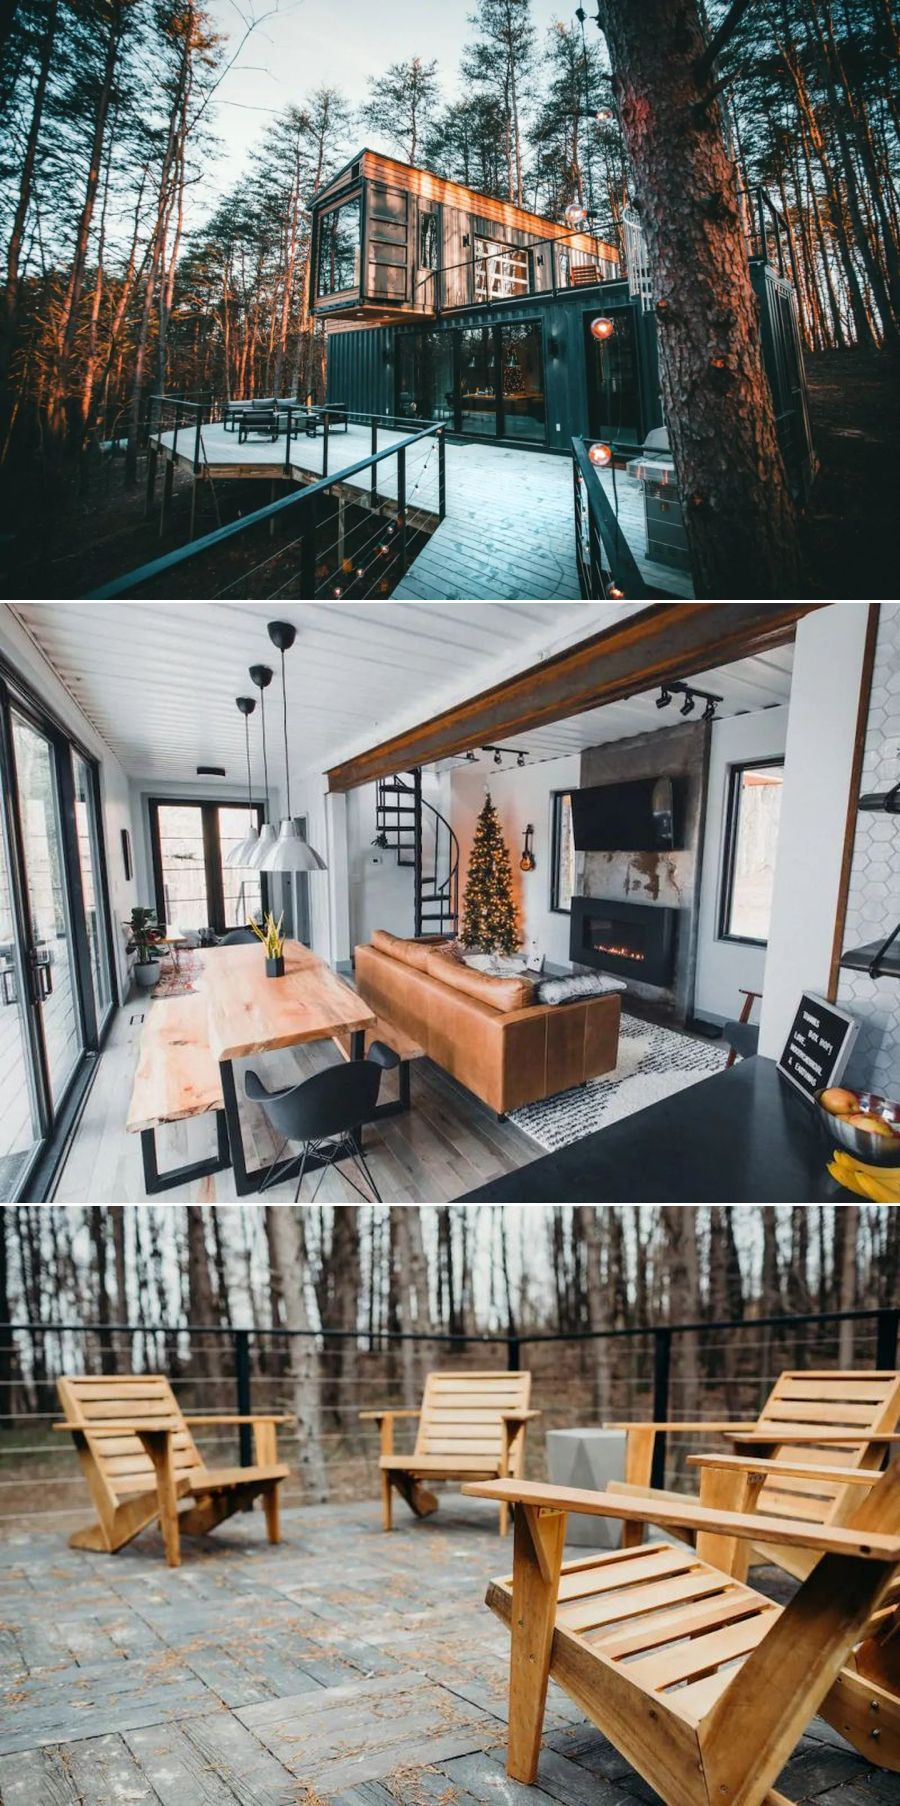 This Airbnb Vacation Rental in Ohio is Made of Three